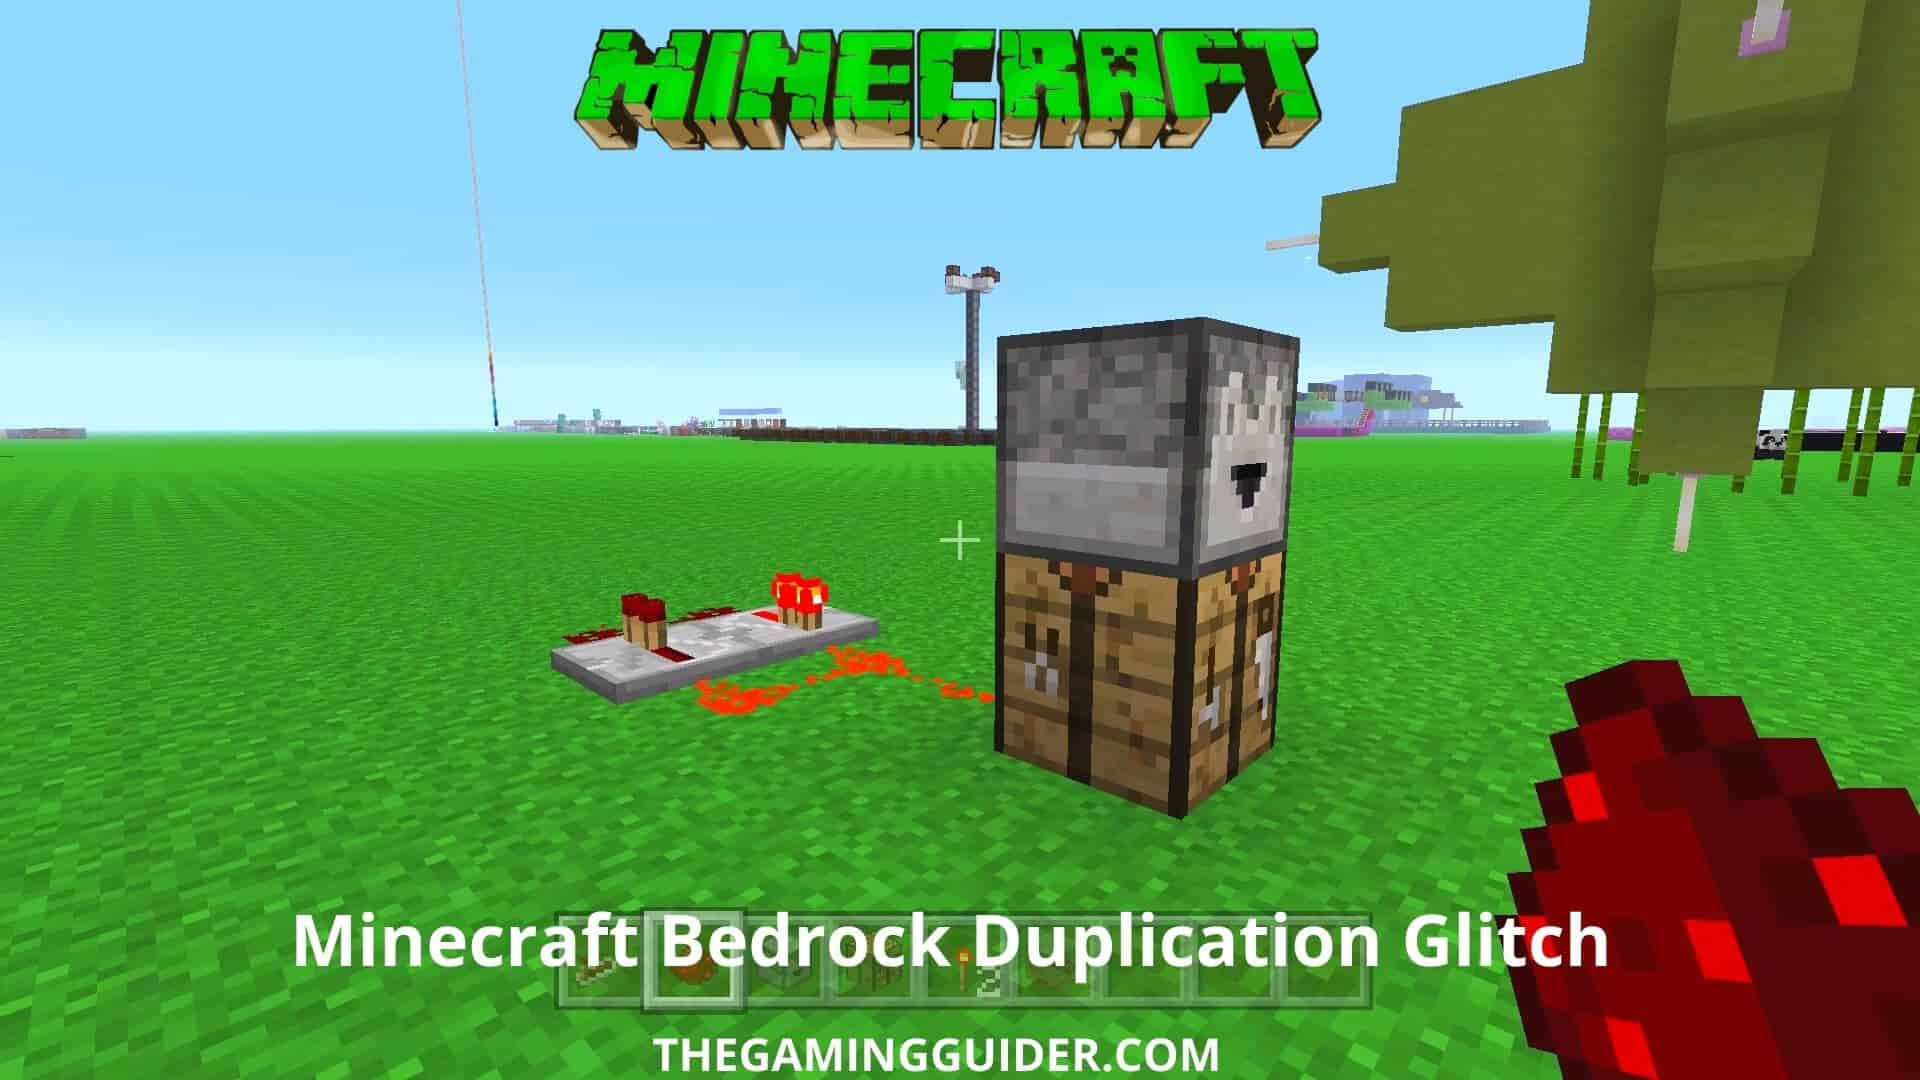 Minecraft Bedrock Duplication Glitch- the gaming guider